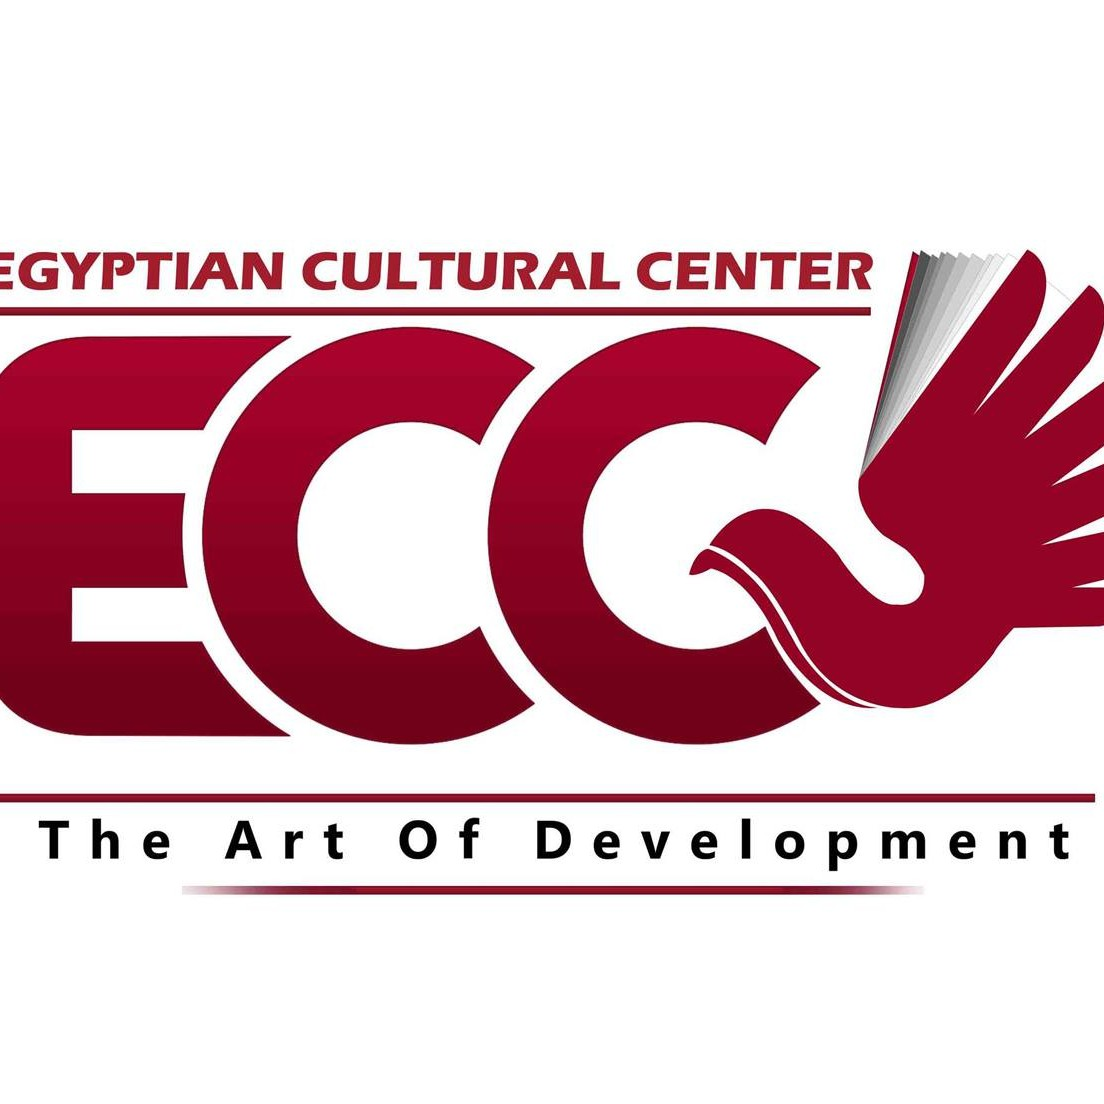 Egyptian Cultural Center's logo